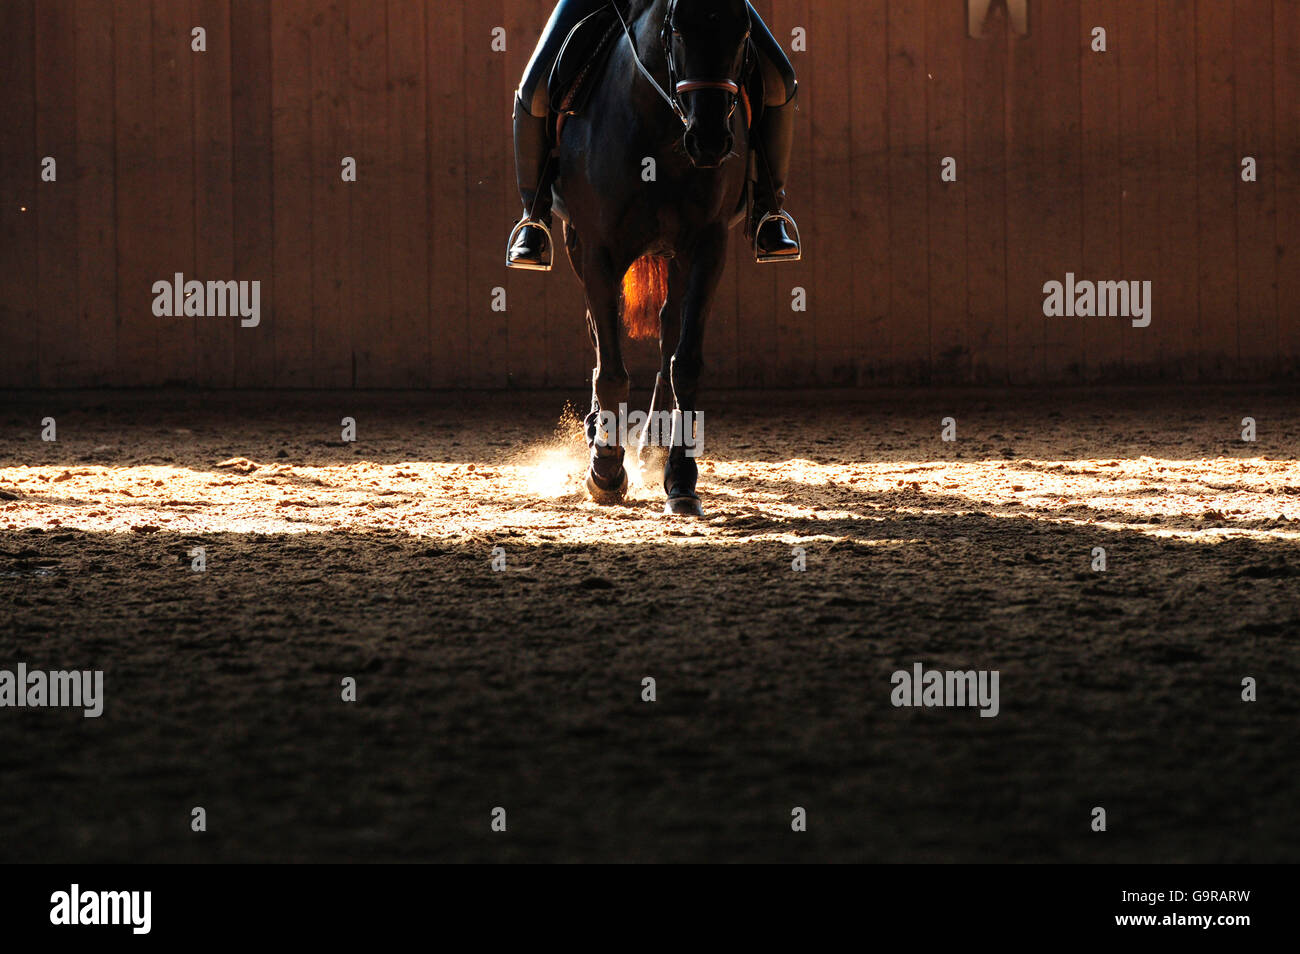 Equestrian Sports, indoor riding arena - Stock Image